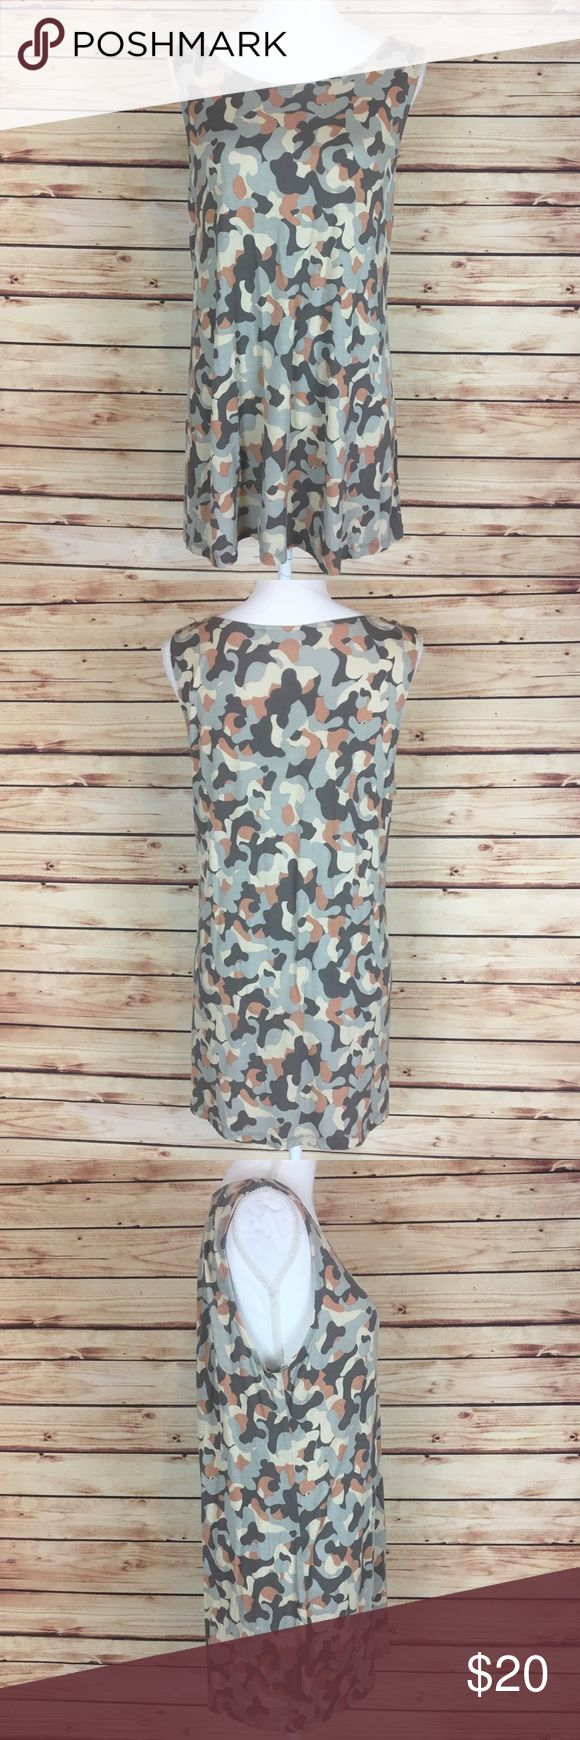 "LOGO Lounge Camo Tank Top Tunic Gray Cream Large LOGO Lounge tank top tunic. Gray, cream, and a pink-ish color camo like print. Sleeveless. Scoop neck. Large.  Excellent preowned condition with no flaws. Originally came with a shirt that went over the top which is missing.  Measurements are approximately: 36"" bust, 39"" waist, and 30"" length.  95% rayon 5% spandex.  No trades. All items come from a pet friendly home. Bundle to save! LOGO Tops Tunics"